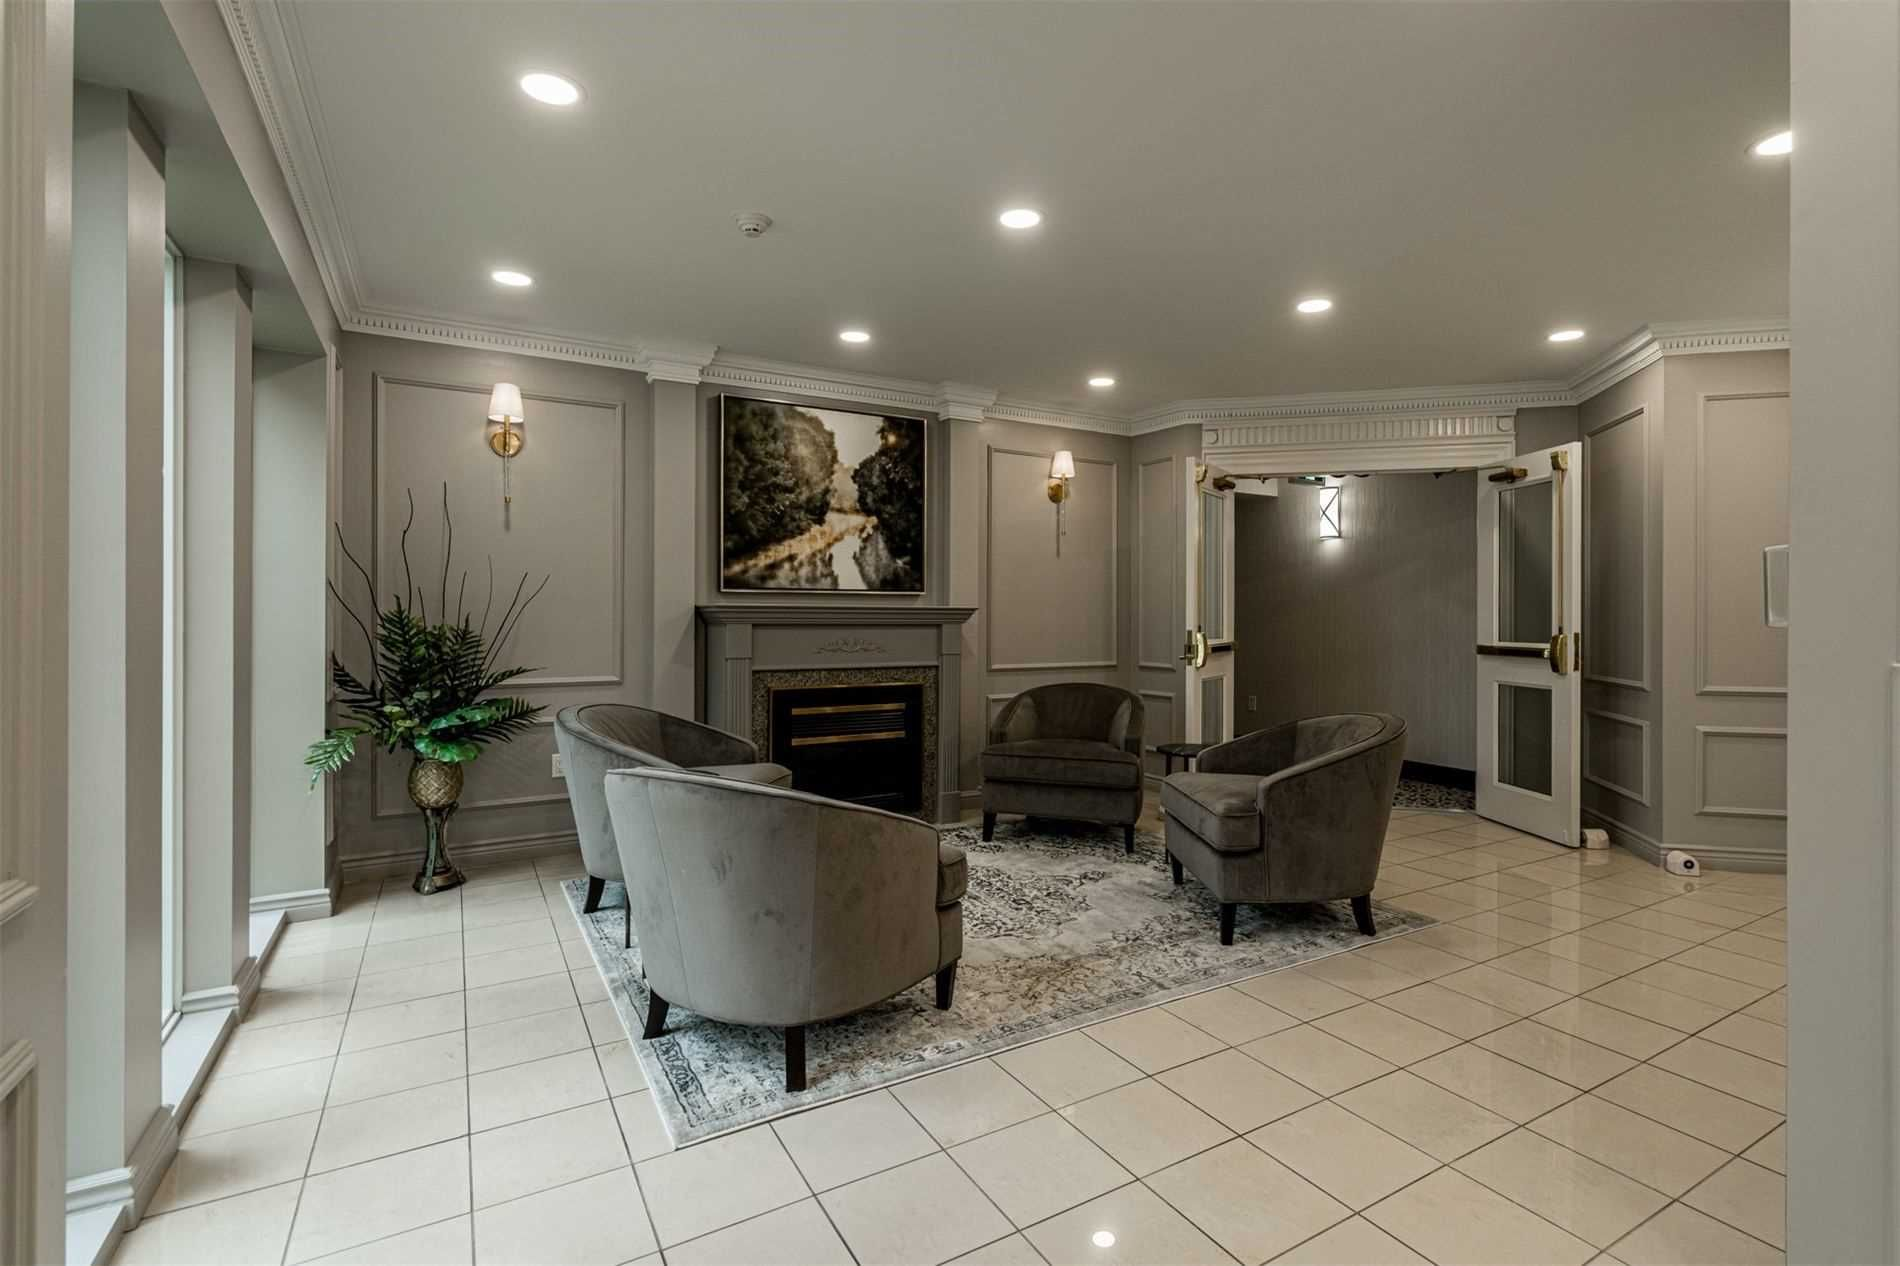 2075 Amherst Heights Dr, unit 111 for sale in Toronto - image #2